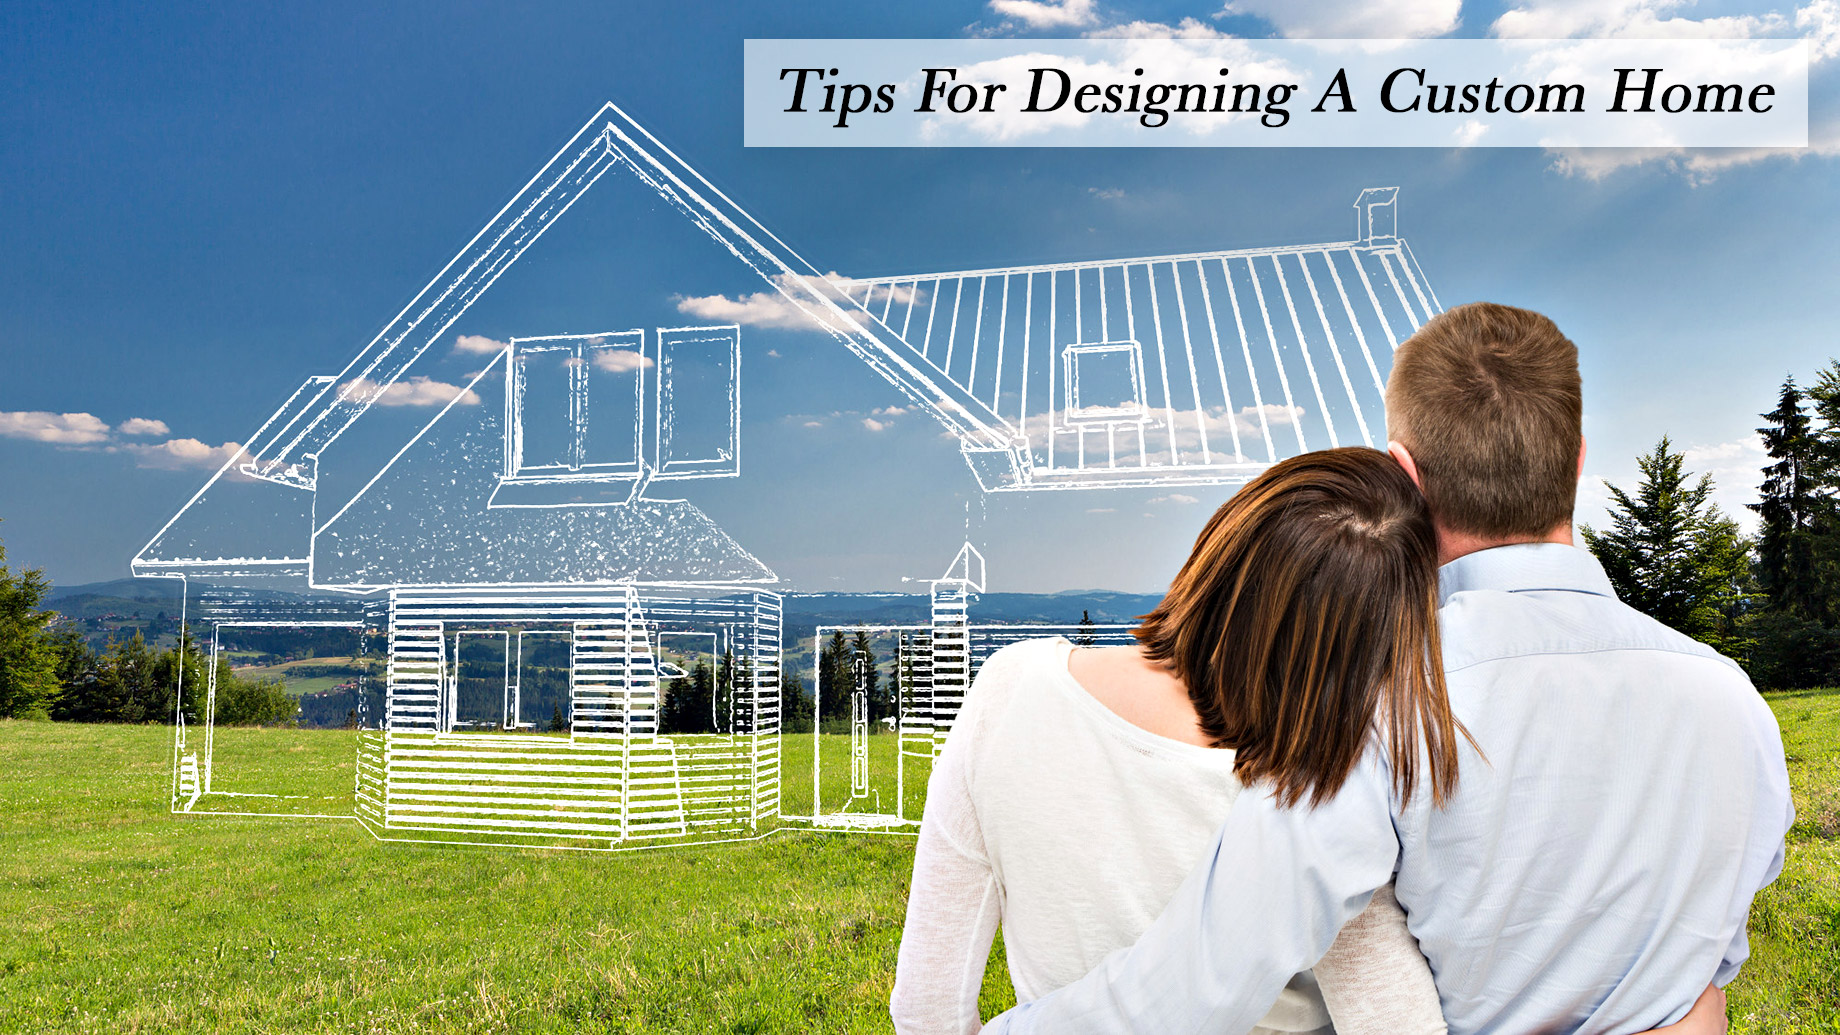 Tips for Designing A Custom Home